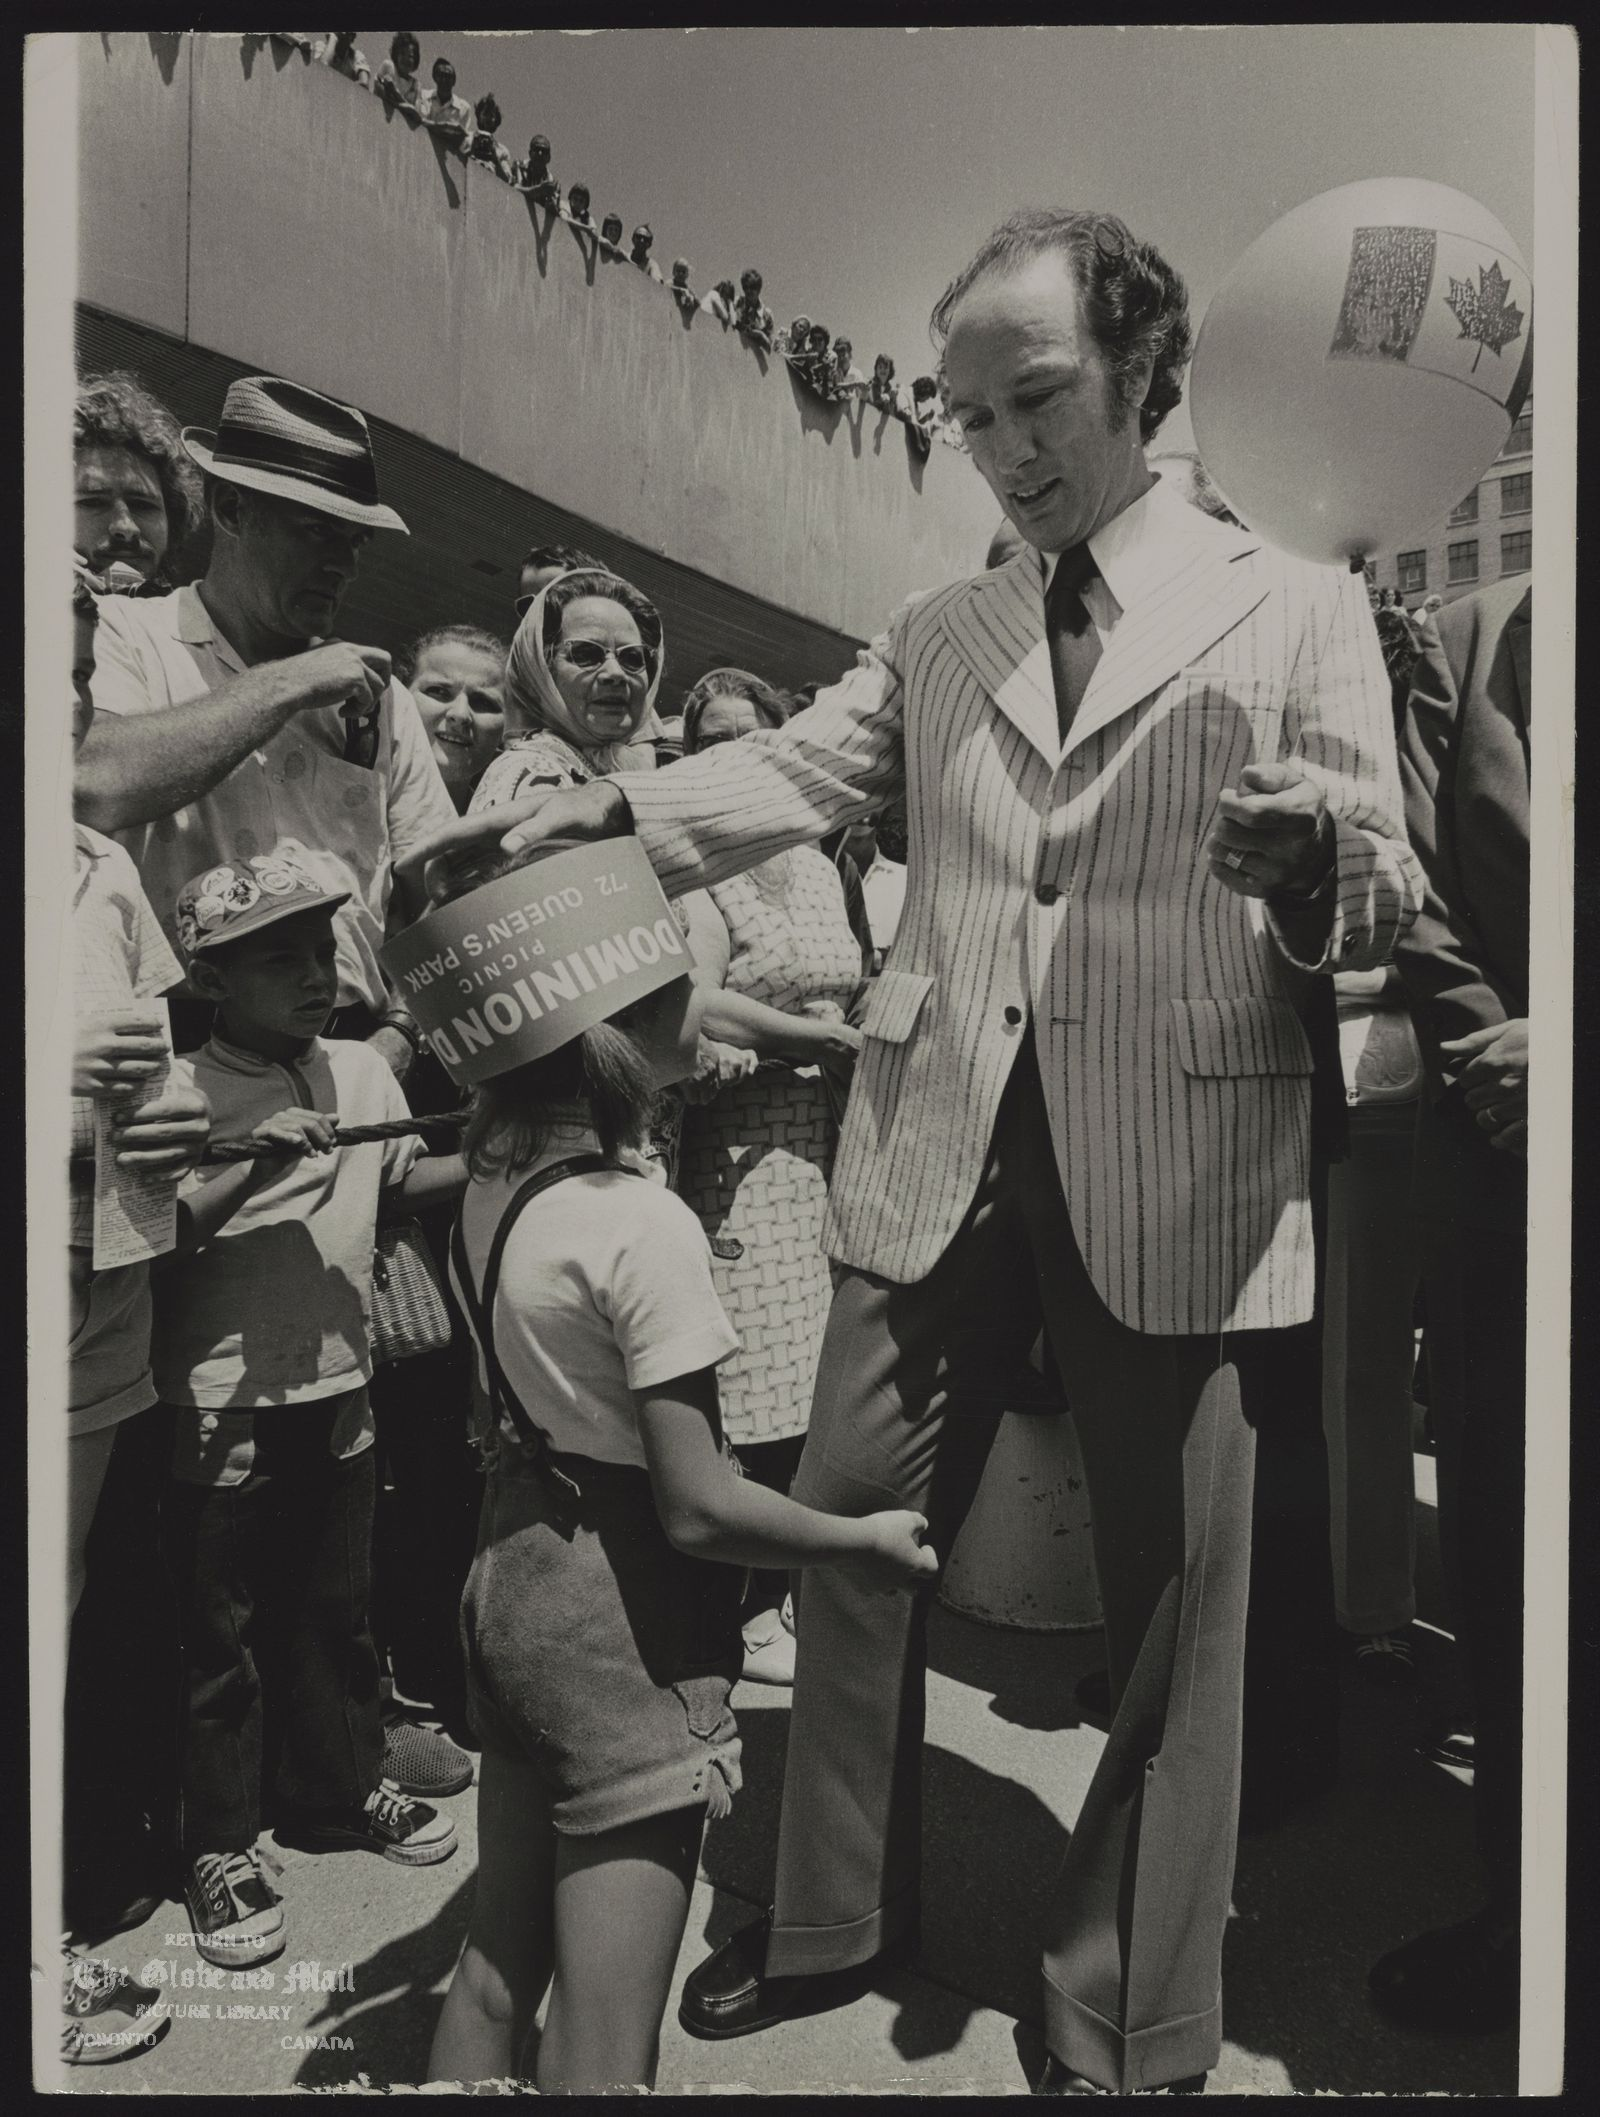 Pierre TRUDEAU Ottawa. Politician Trudeau at Nathan Phillips Square, Toronto on Dominion Day, July 1, 1972.